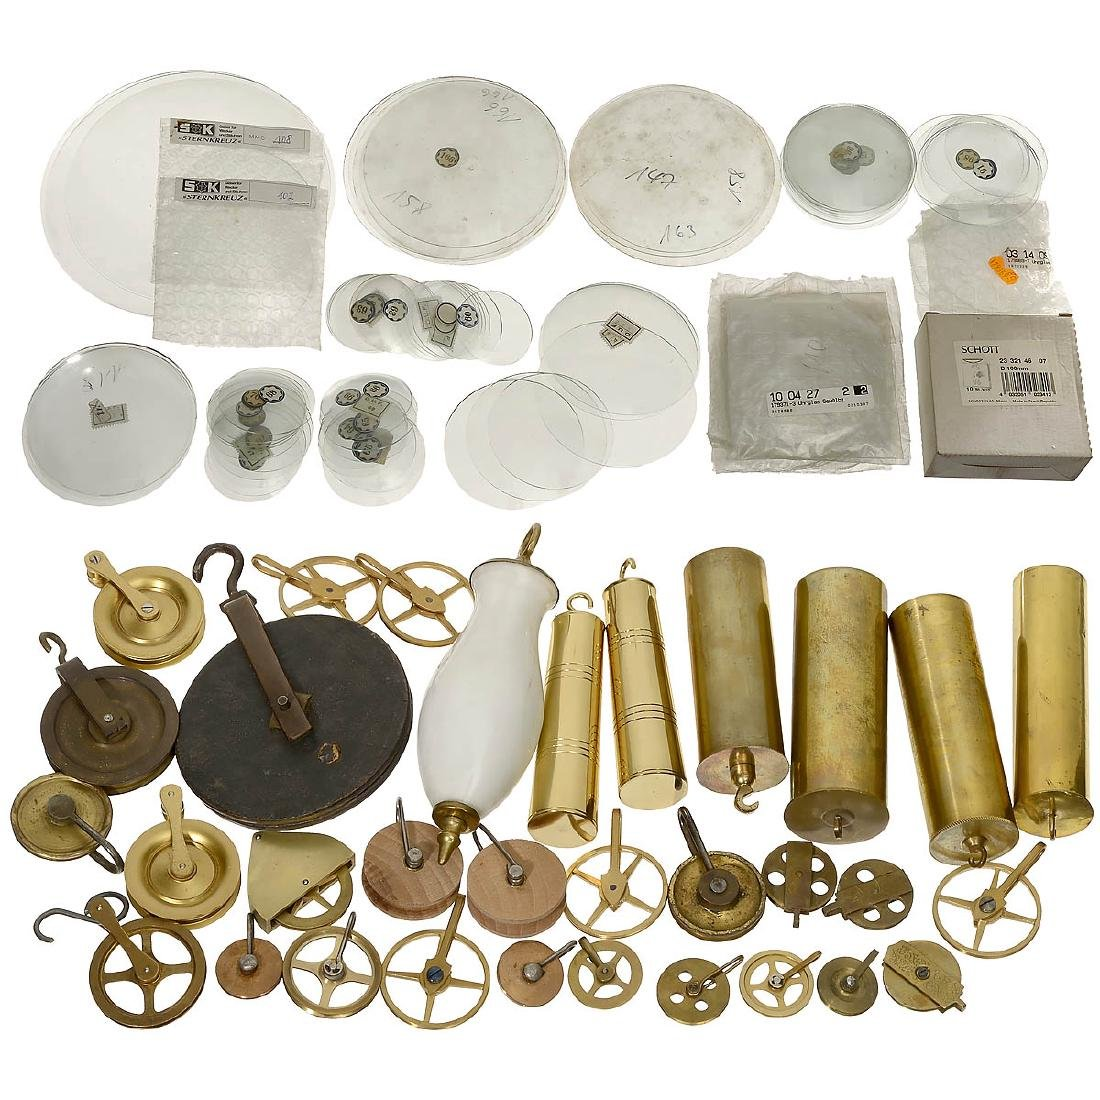 Very Interesting Clock Spare Parts - 3